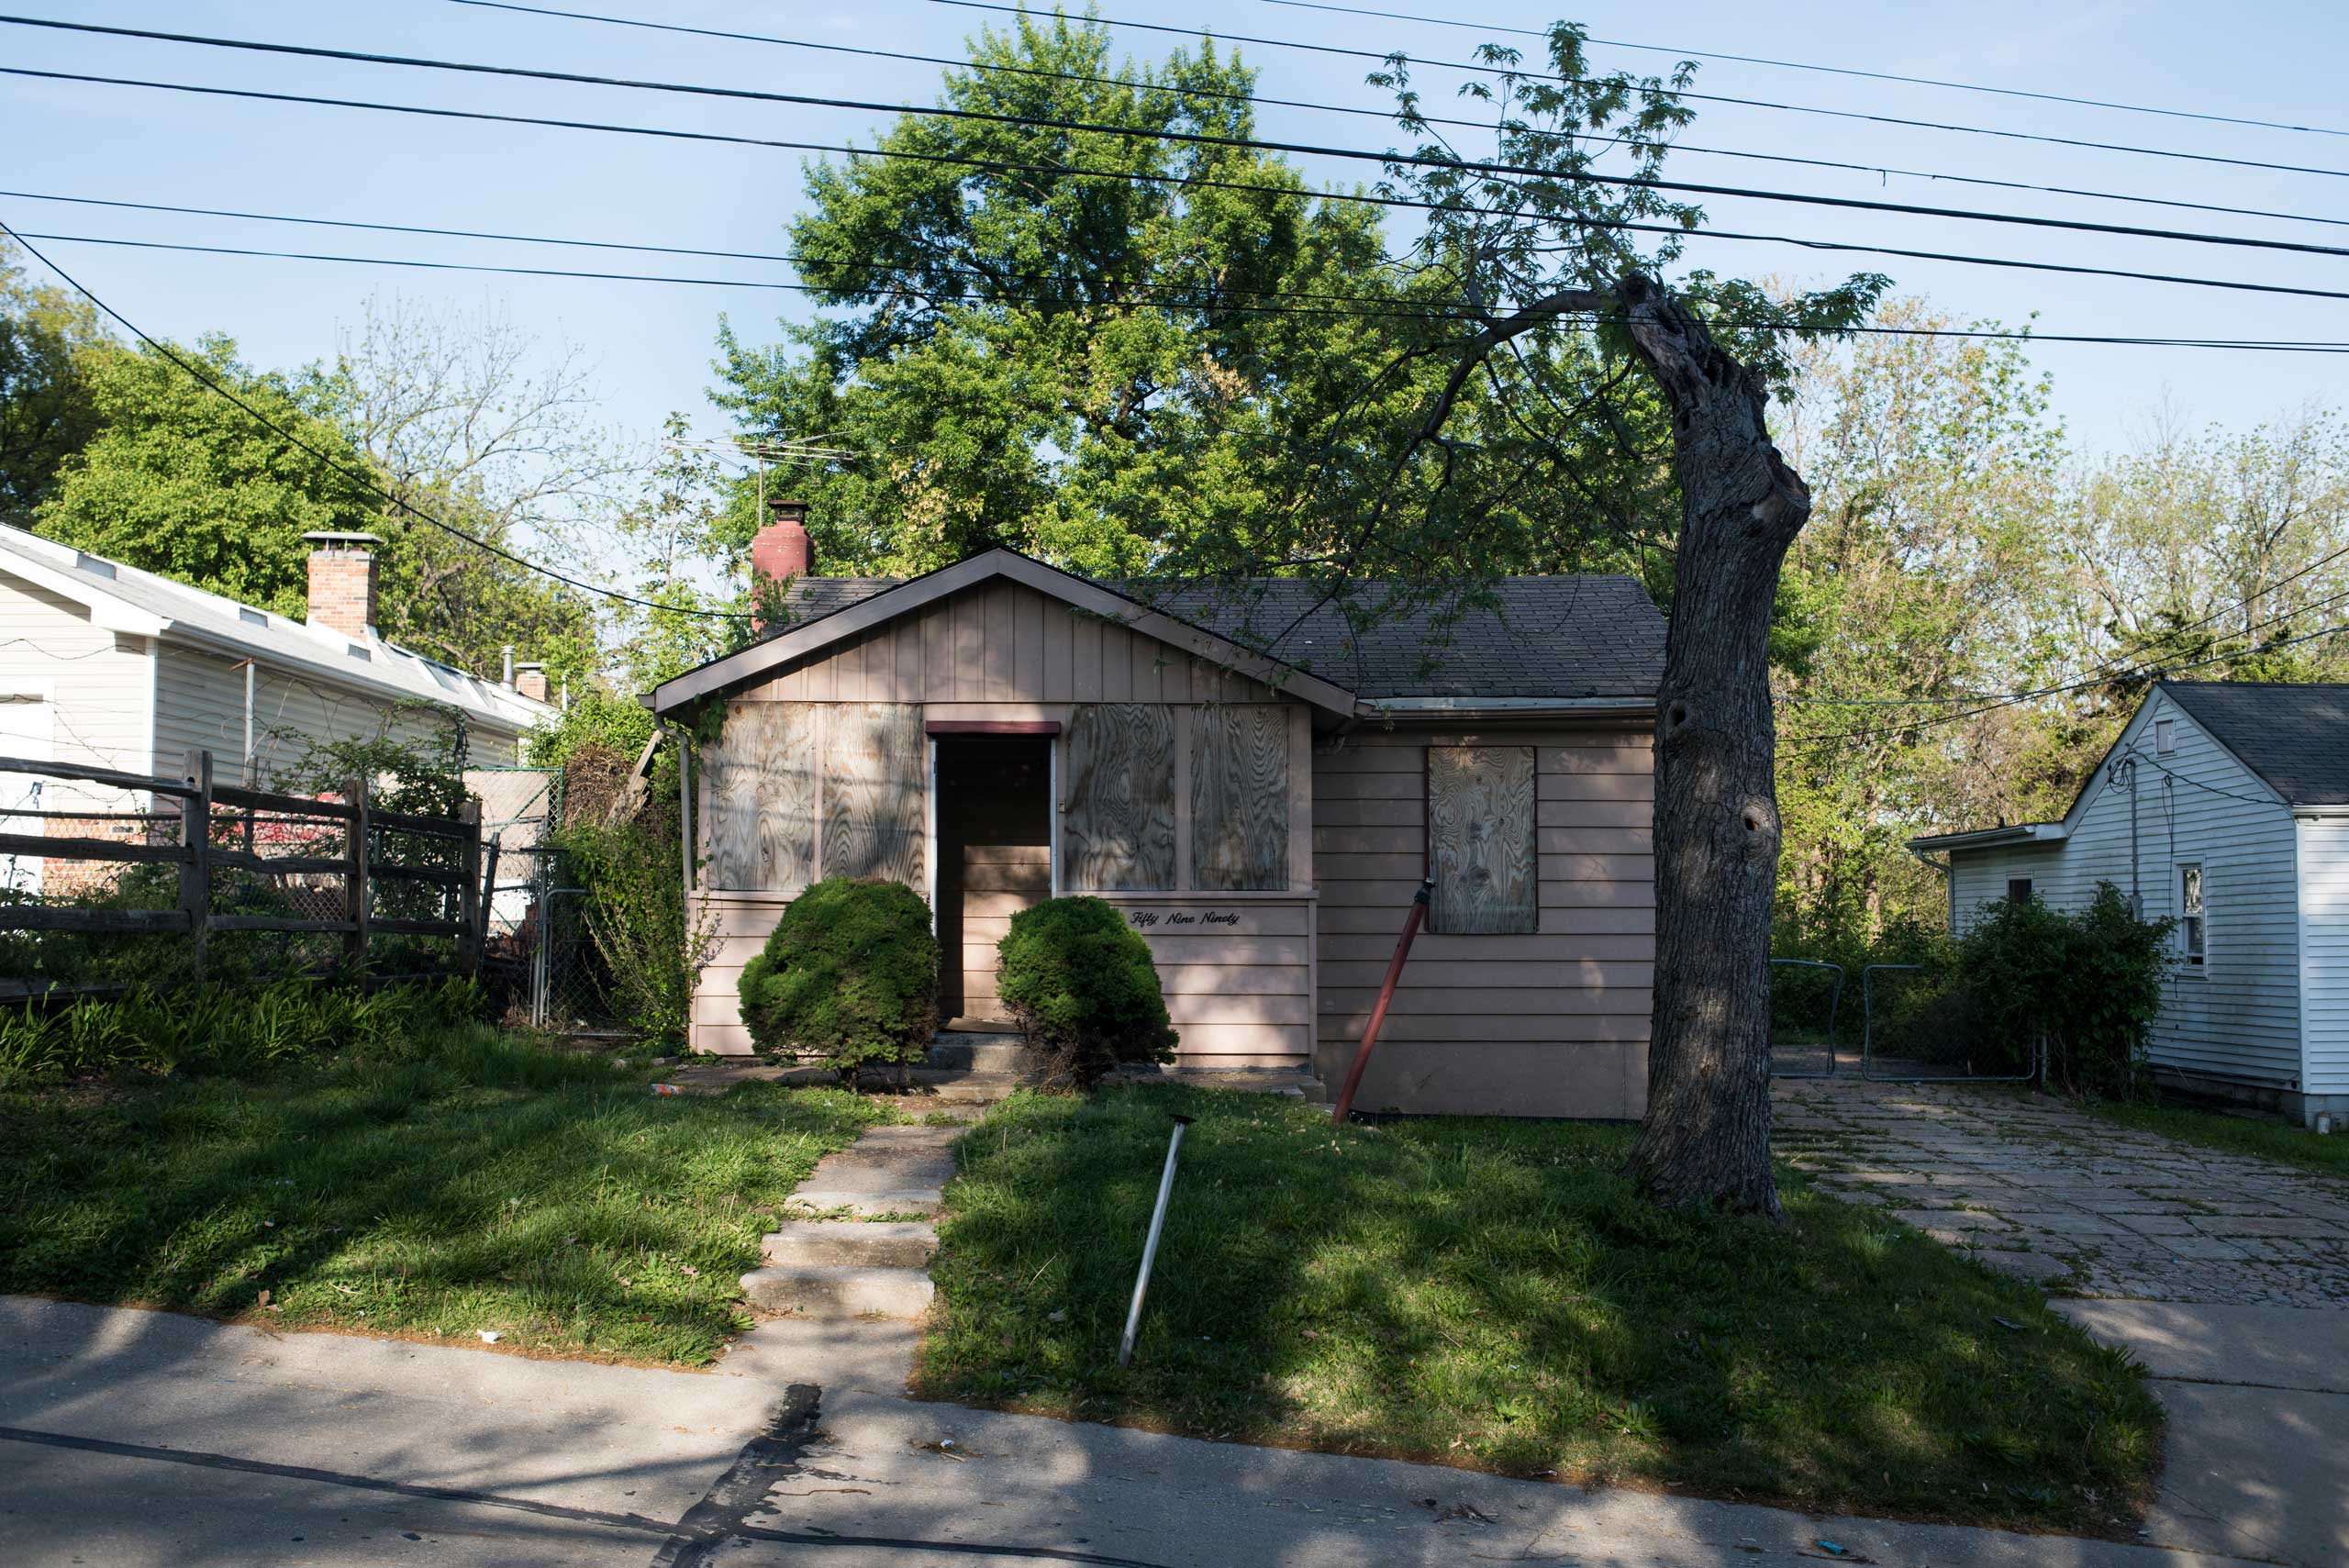 An abandoned house on Dupree Avenue that has been a point of contention for neighbors because it is used by local youth as a hang out to drink, do drugs, and play with their guns.